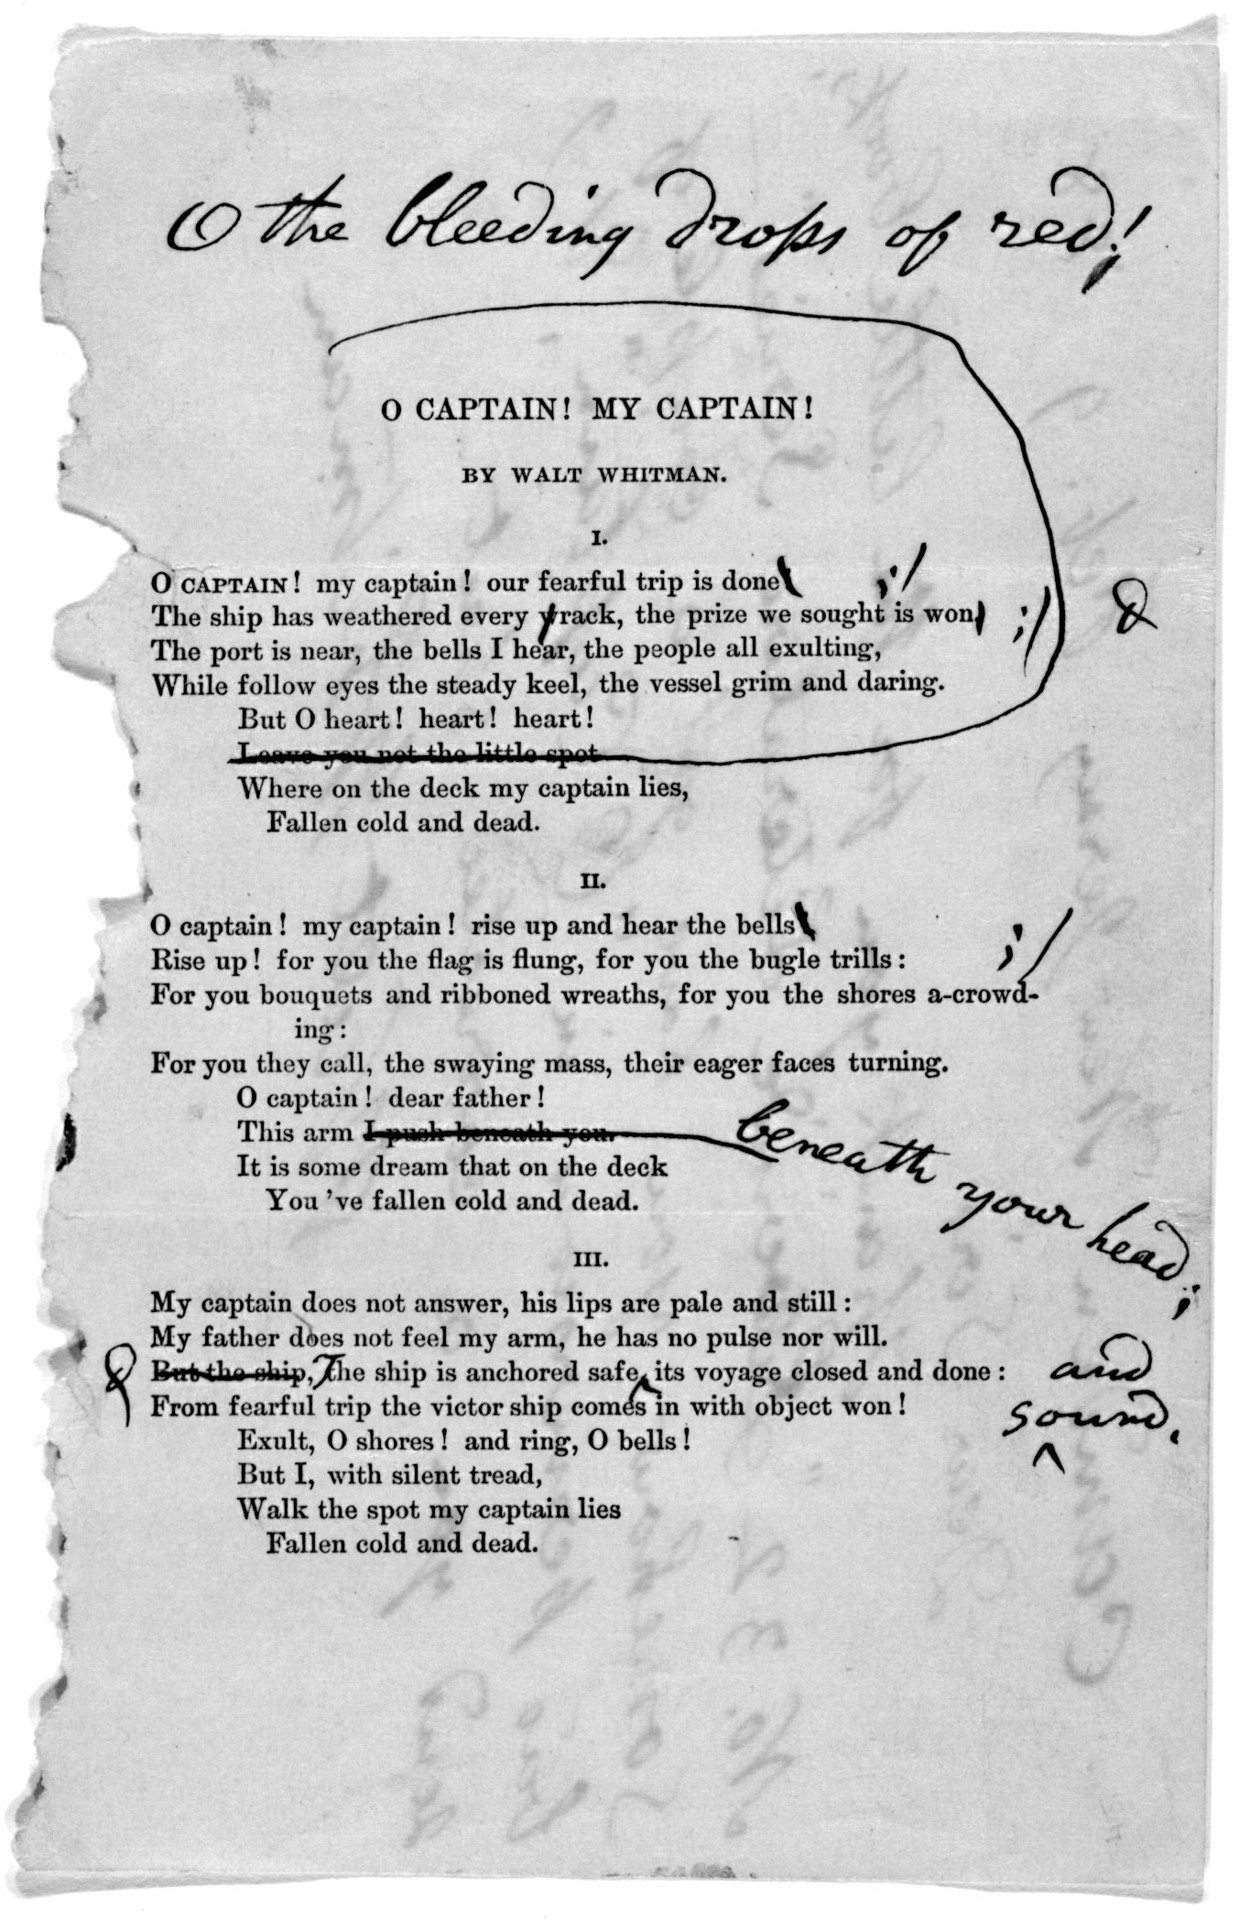 Walt Whitman's corrected reprint of O Captain, My Captain!